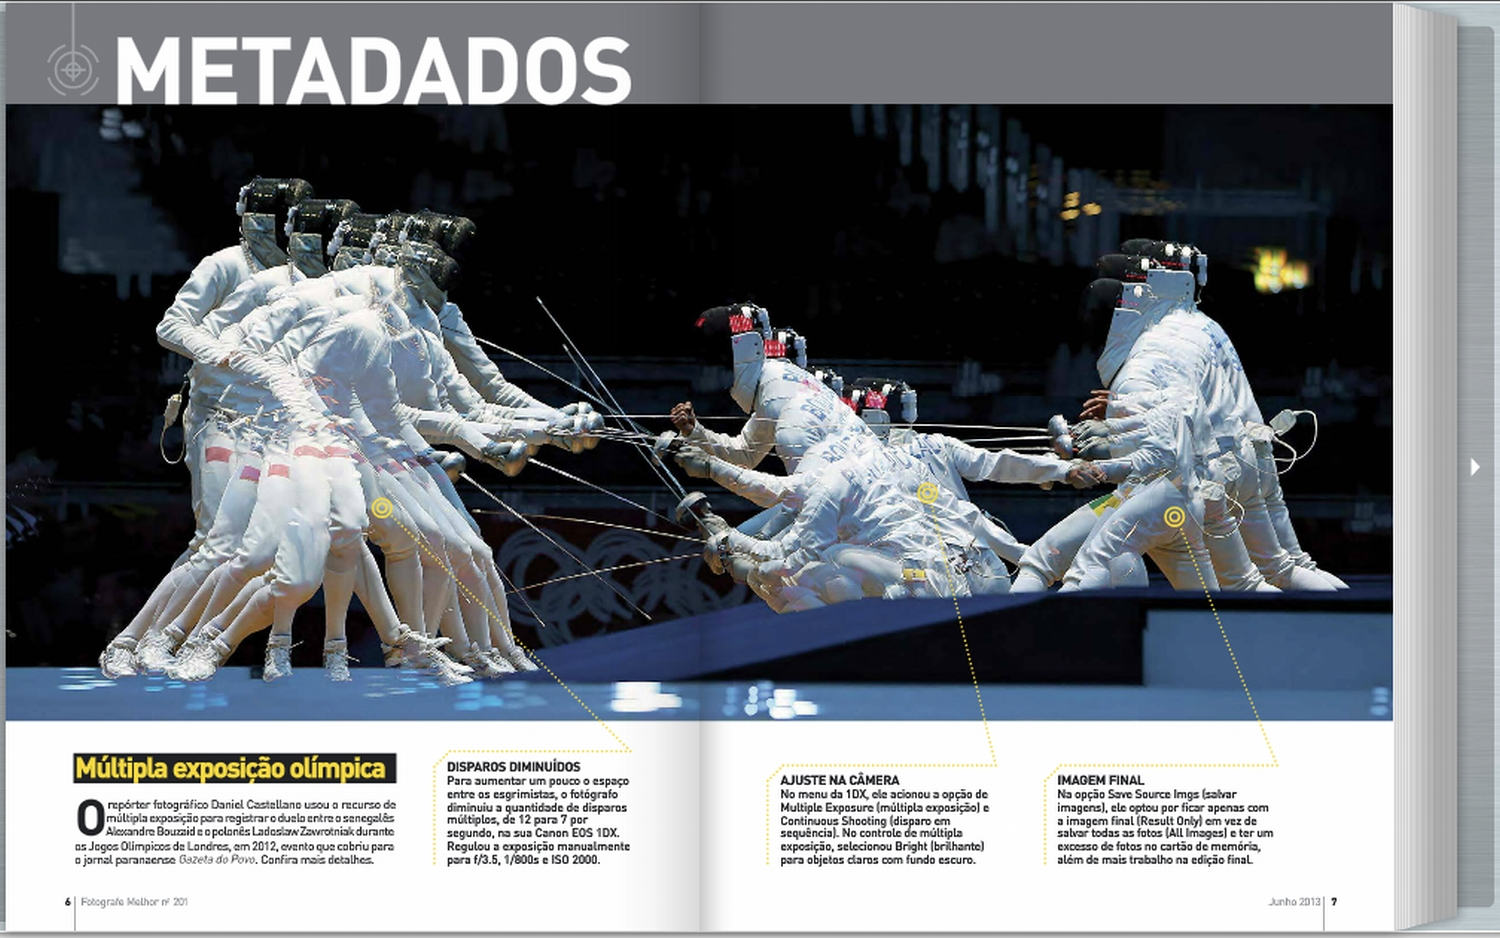 revista fotografe jun 2013 foto esgrima.jpg